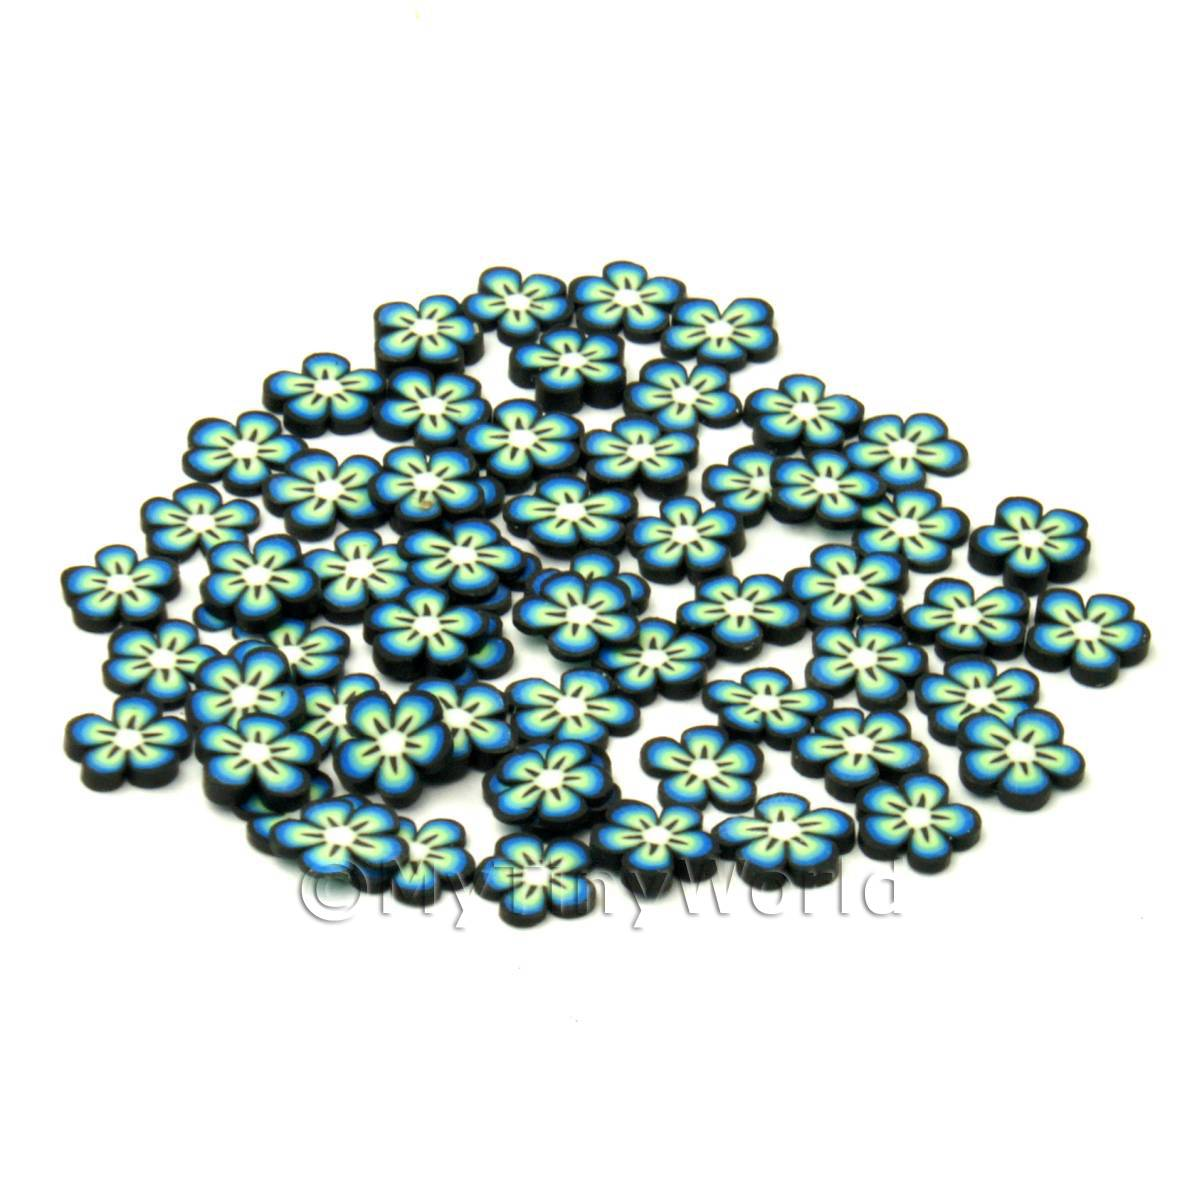 50 Blue Flower Cane Slices - Nail Art (CNS19)